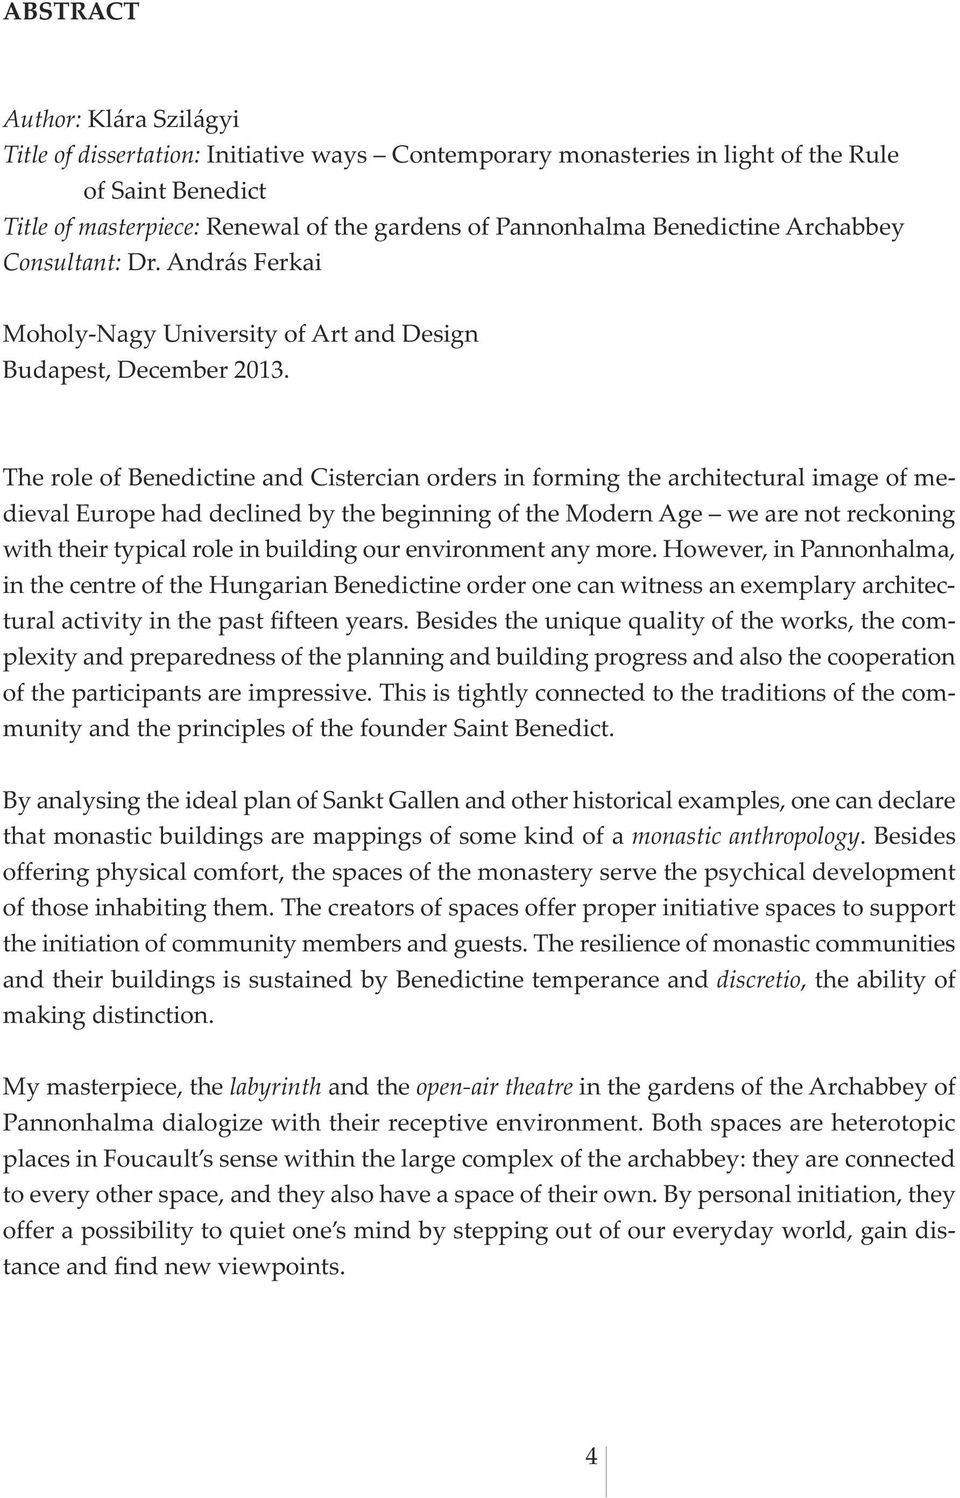 The role of Benedictine and Cistercian orders in forming the architectural image of medieval Europe had declined by the beginning of the Modern Age we are not reckoning with their typical role in